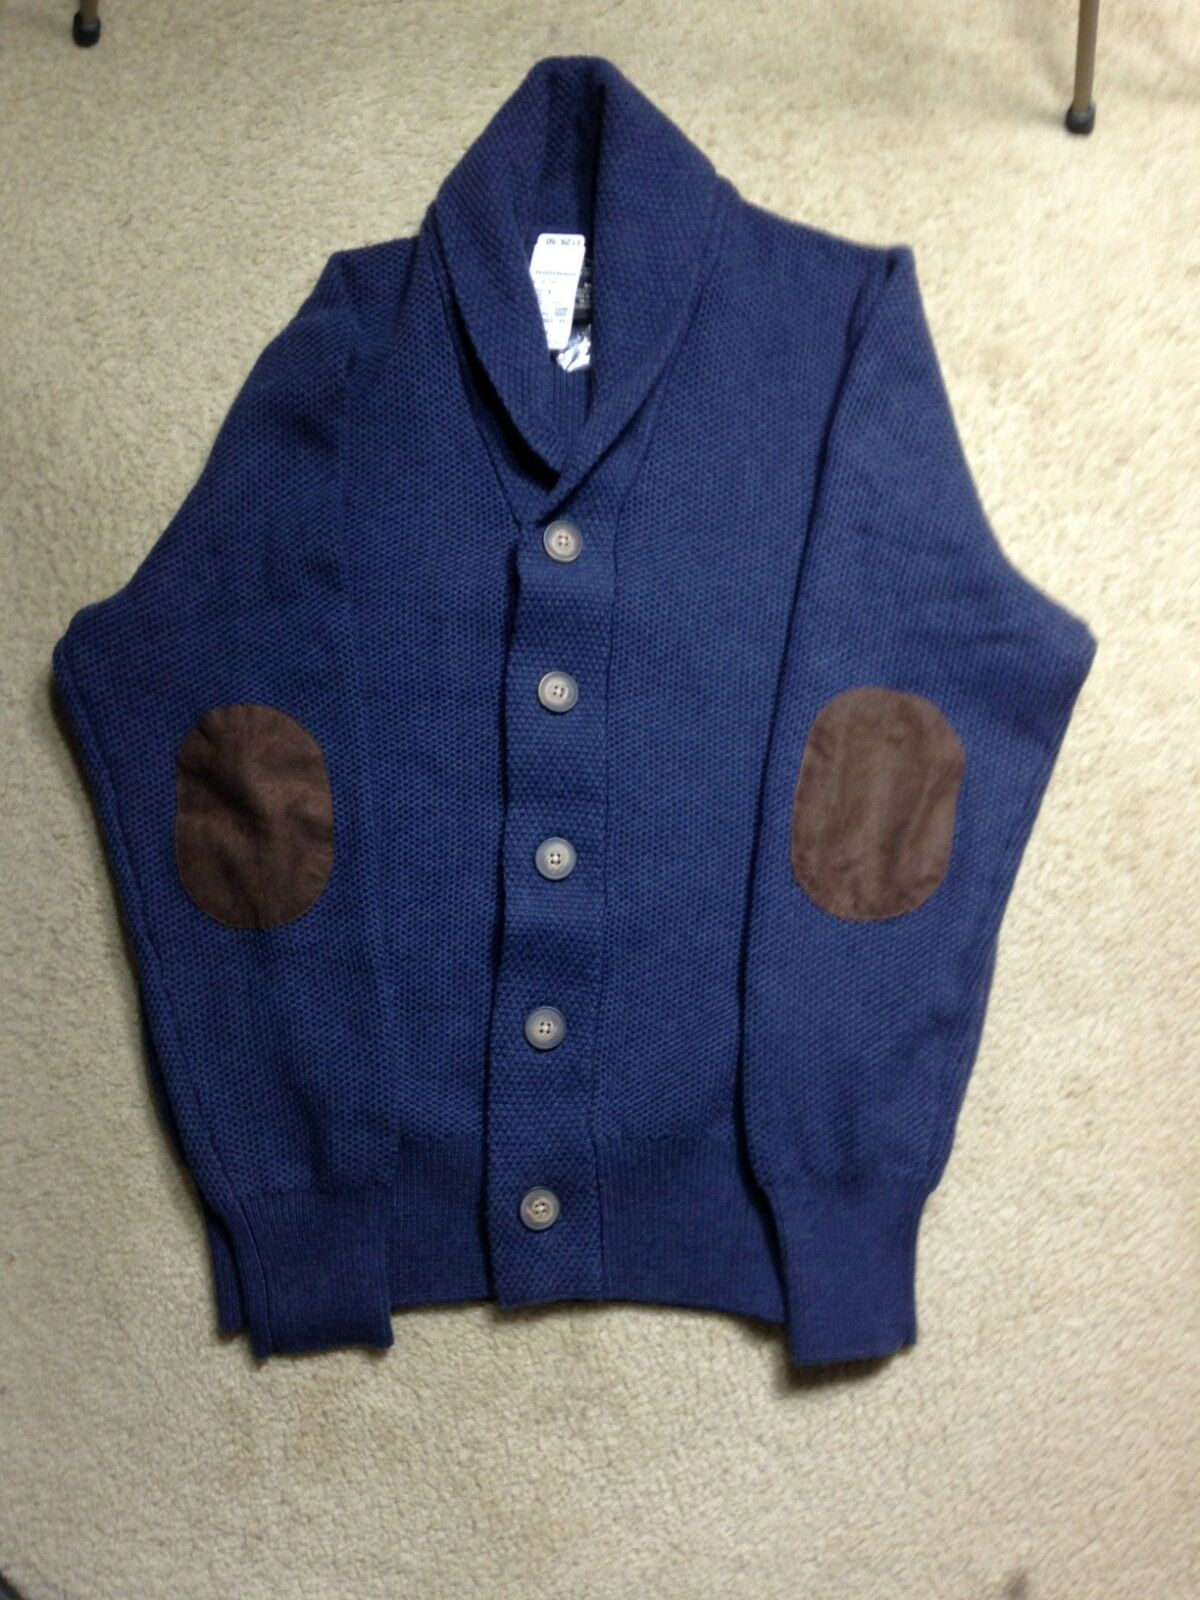 New Jos A Bank Mens bluee Cardigan Sweater with Leather Elbow Patches Medium